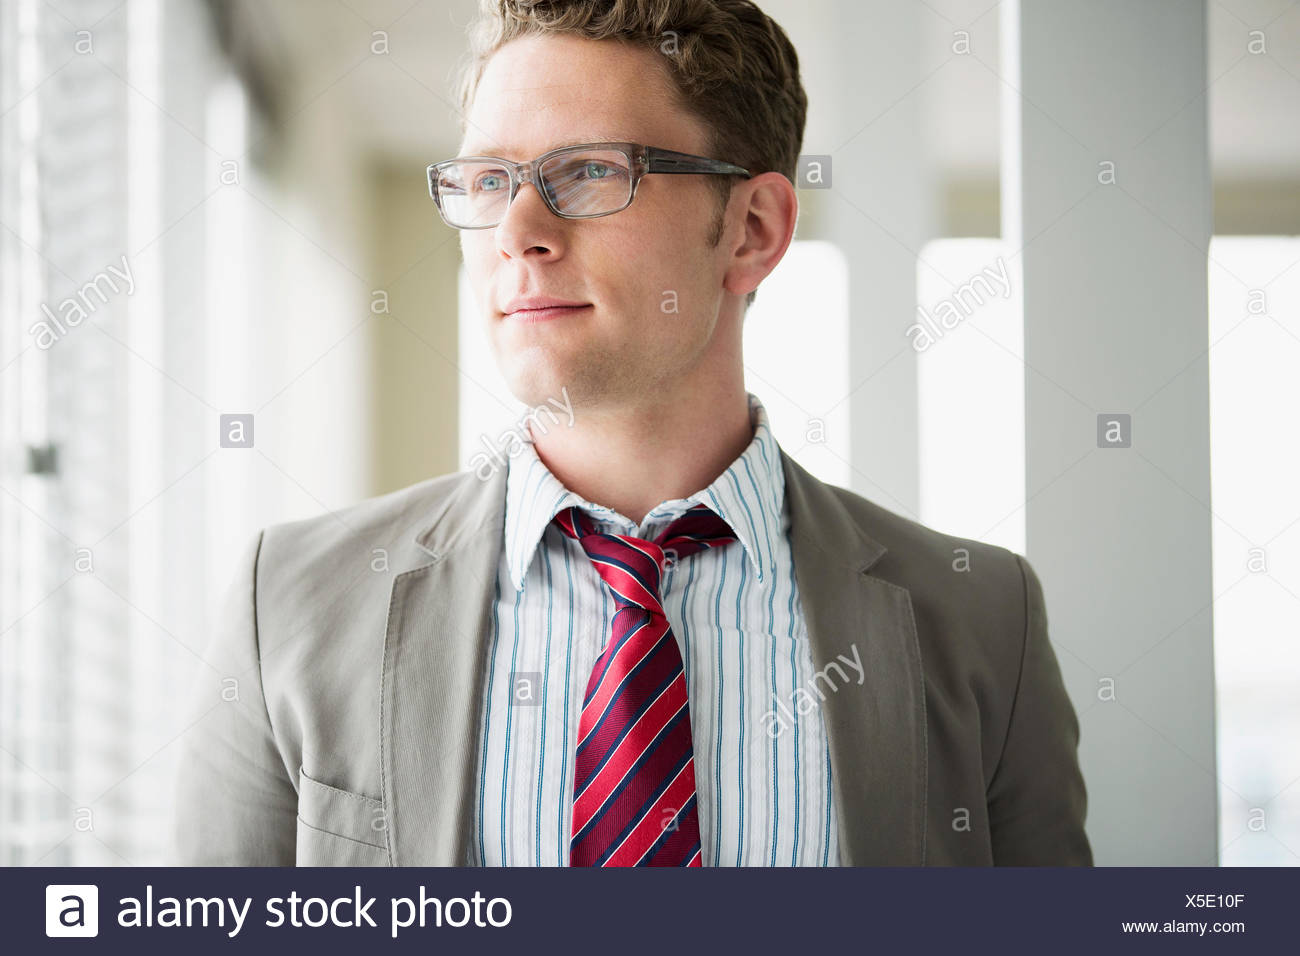 mid-adult businessman gazing out window - Stock Image